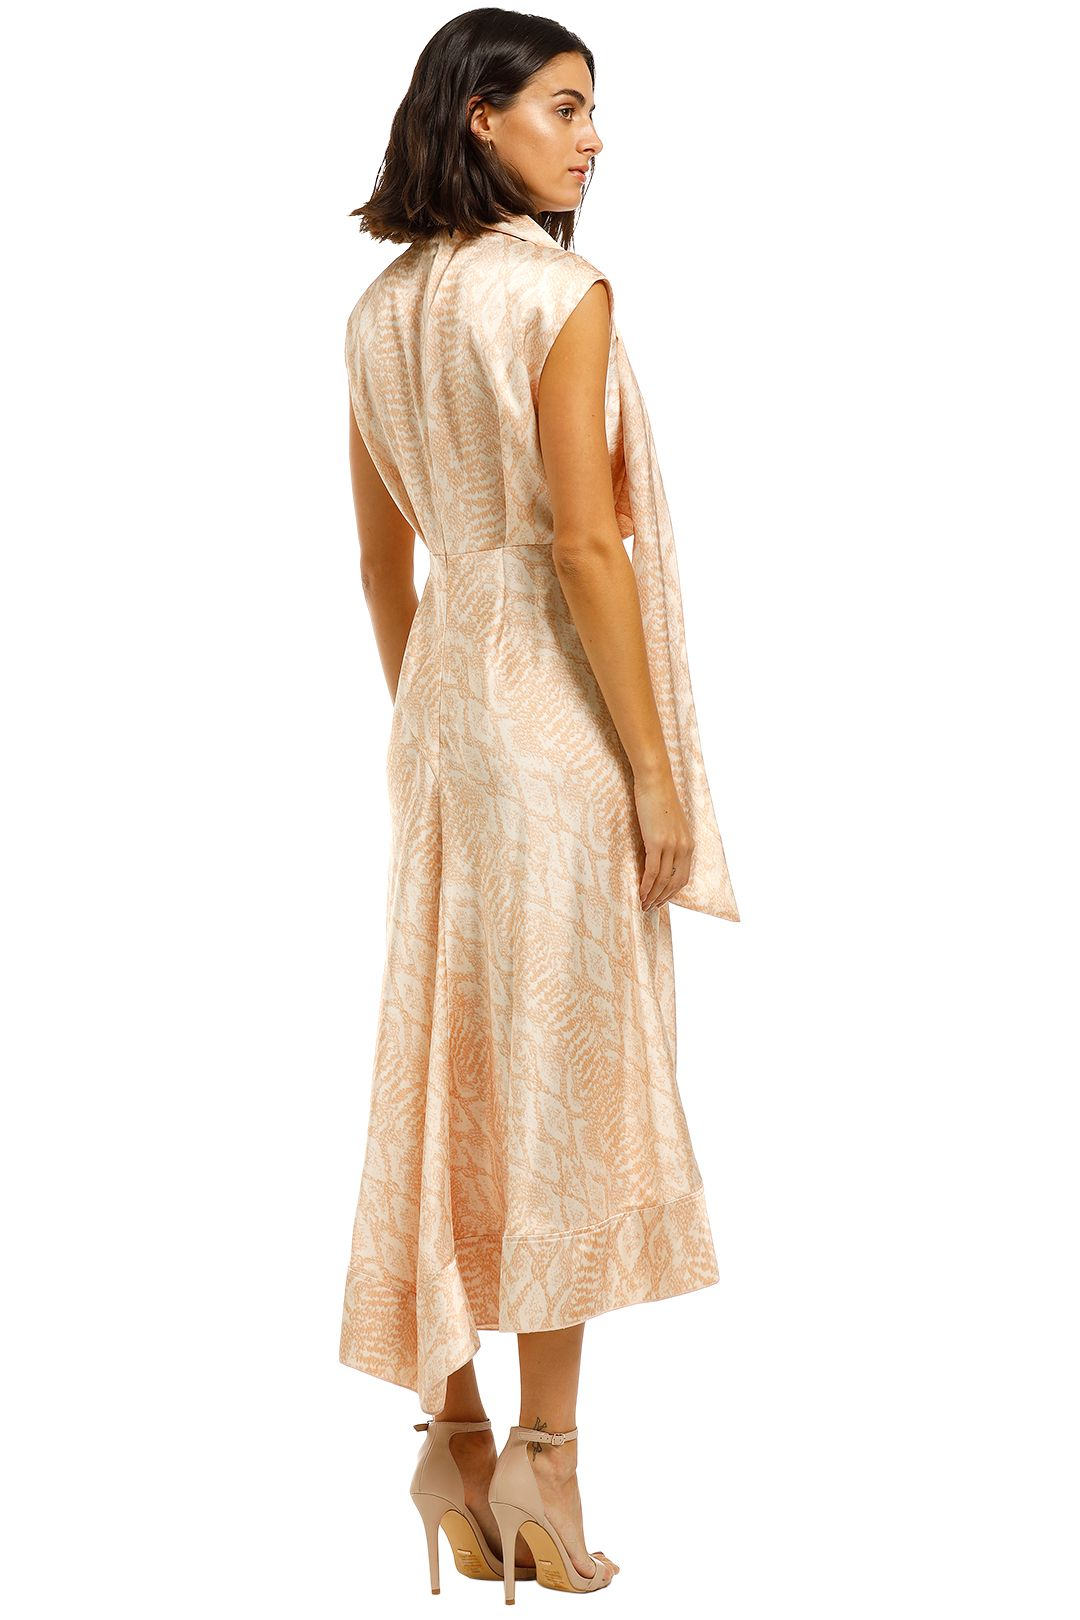 Acler-Gifford-Dress-Back